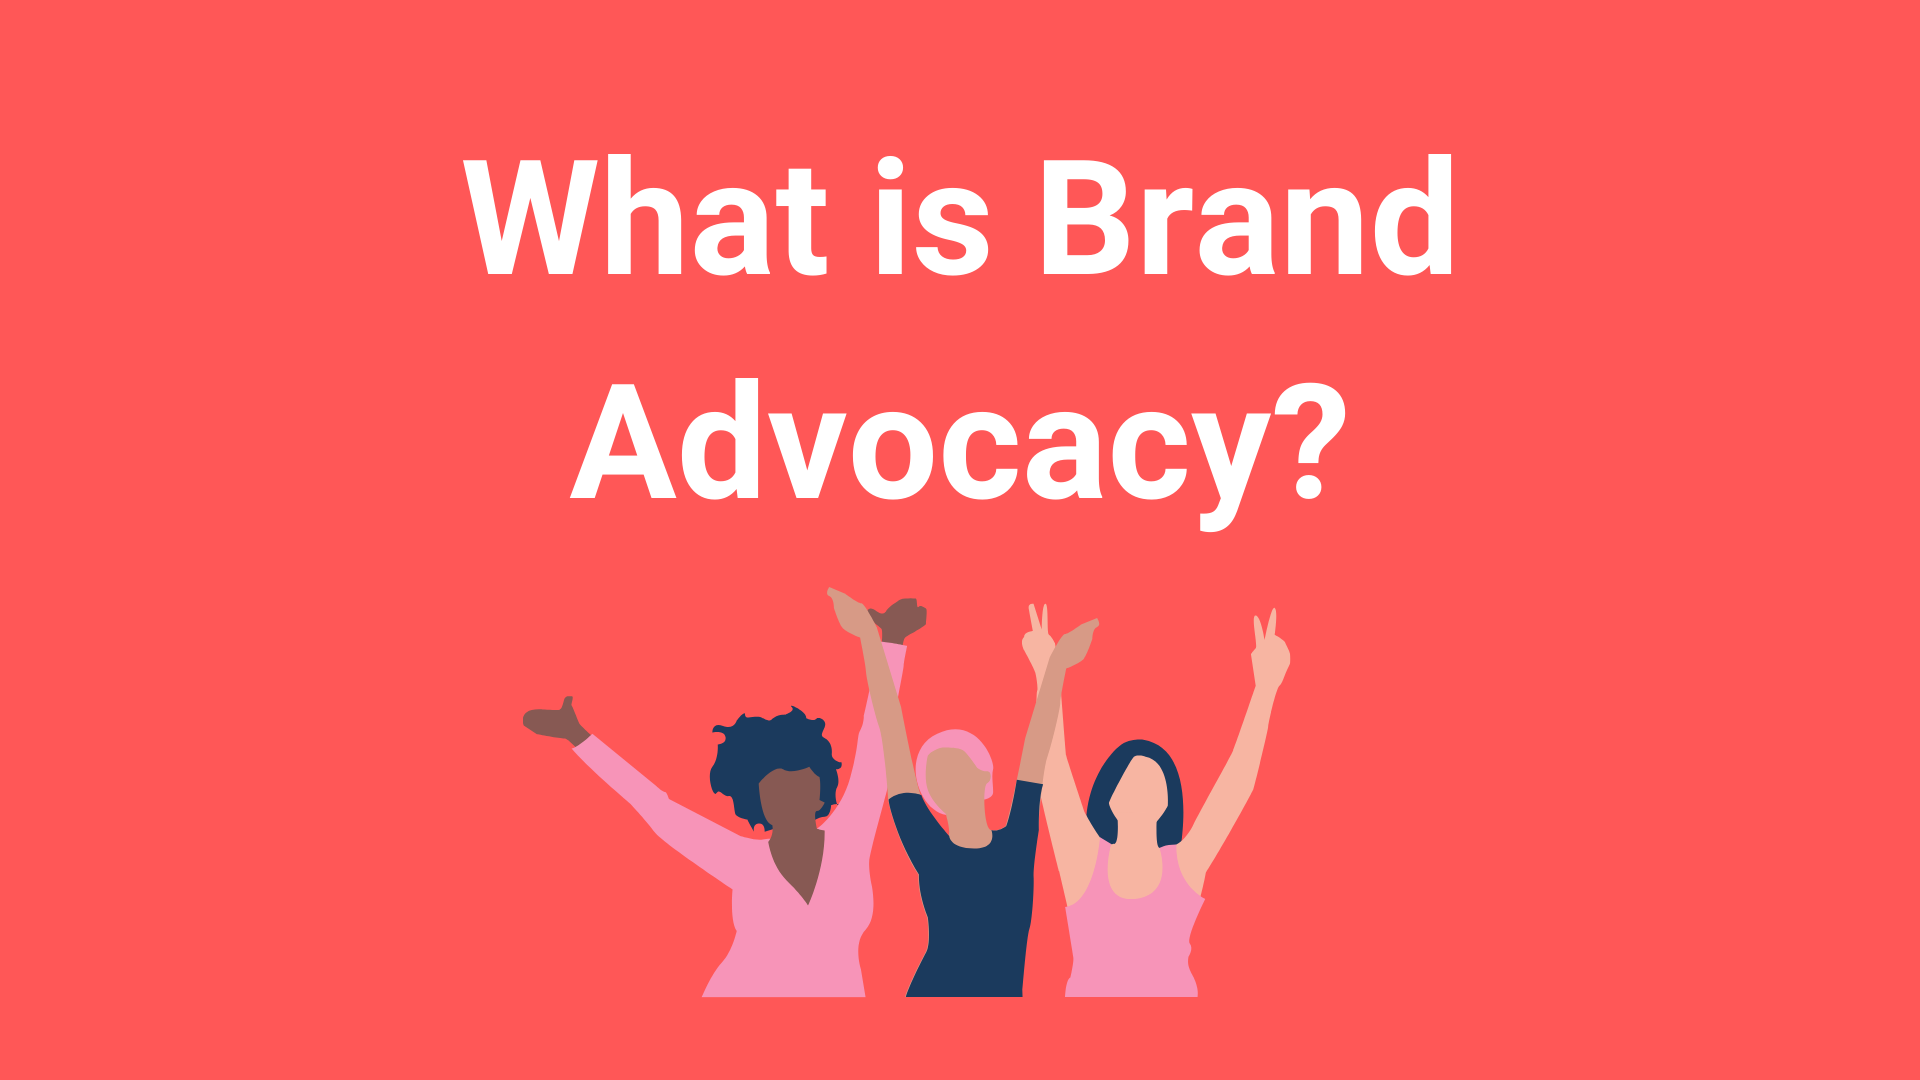 What is Brand Advocacy?